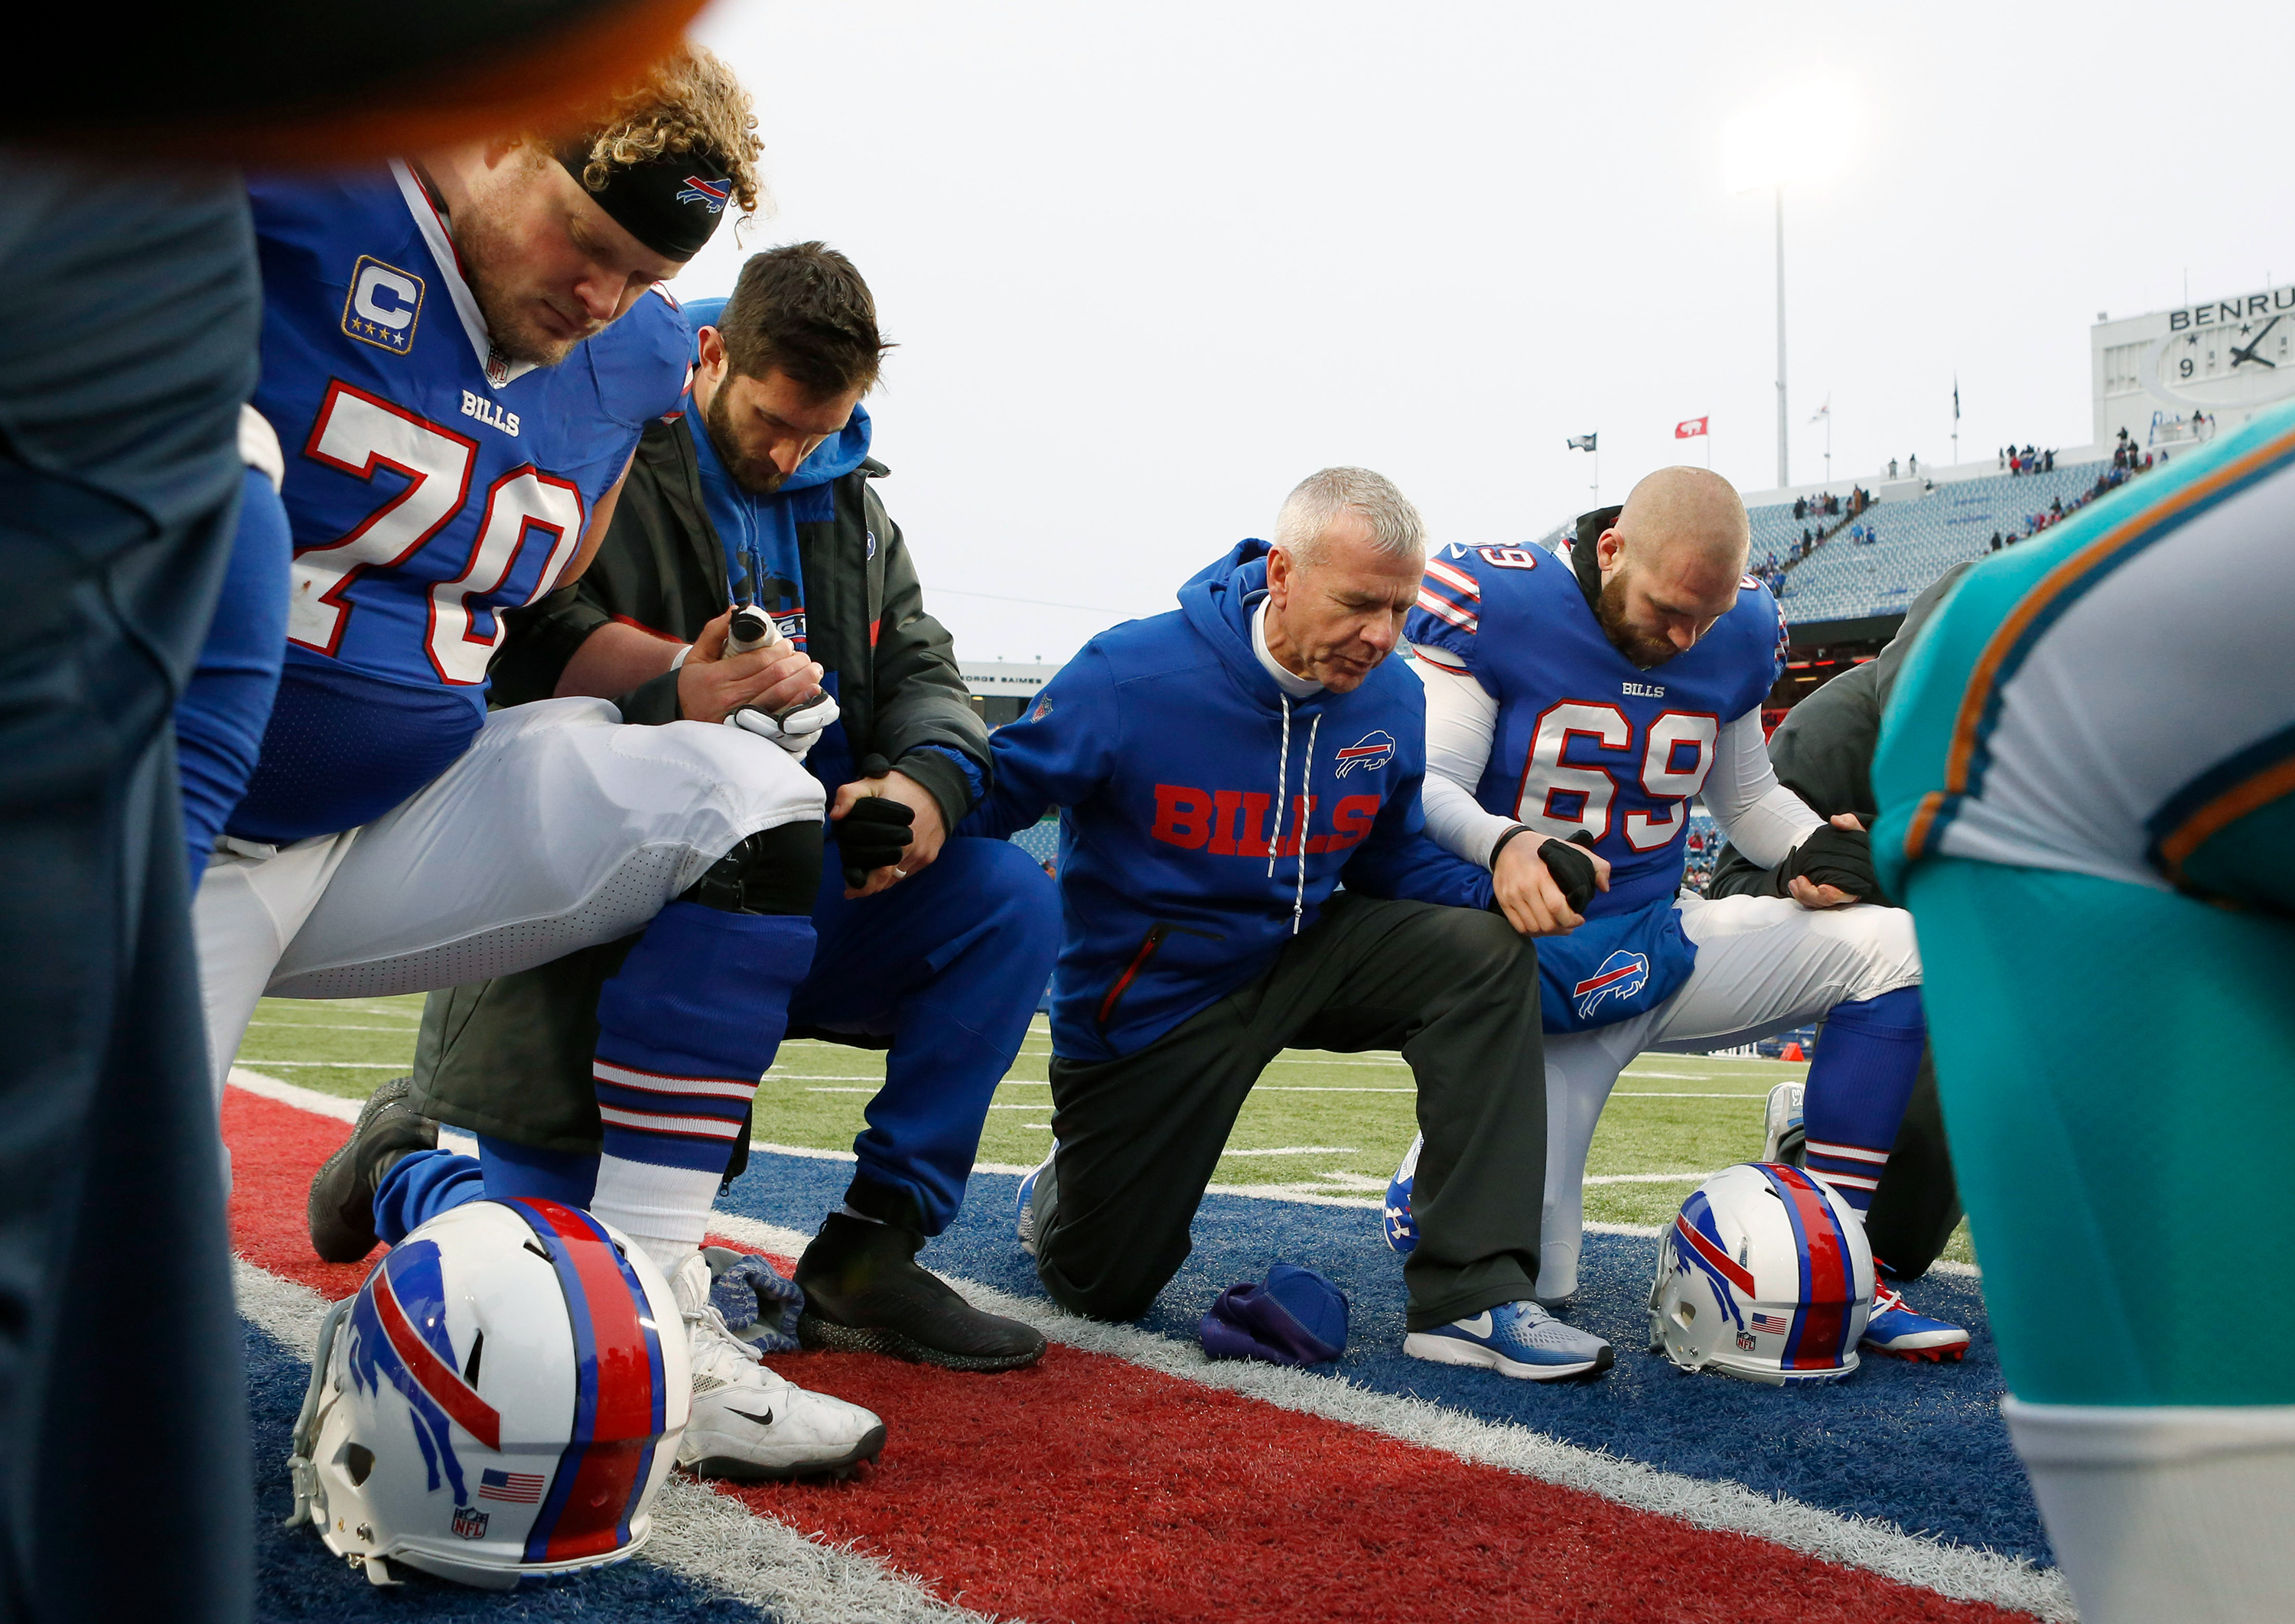 89de2c26c6a2 Buffalo Bills Chaplain Len Vanden Bos leads a prayer on the field after a  game against the Miami Dolphins at New Era Field. Buffalo beats Miami 24 to  16.